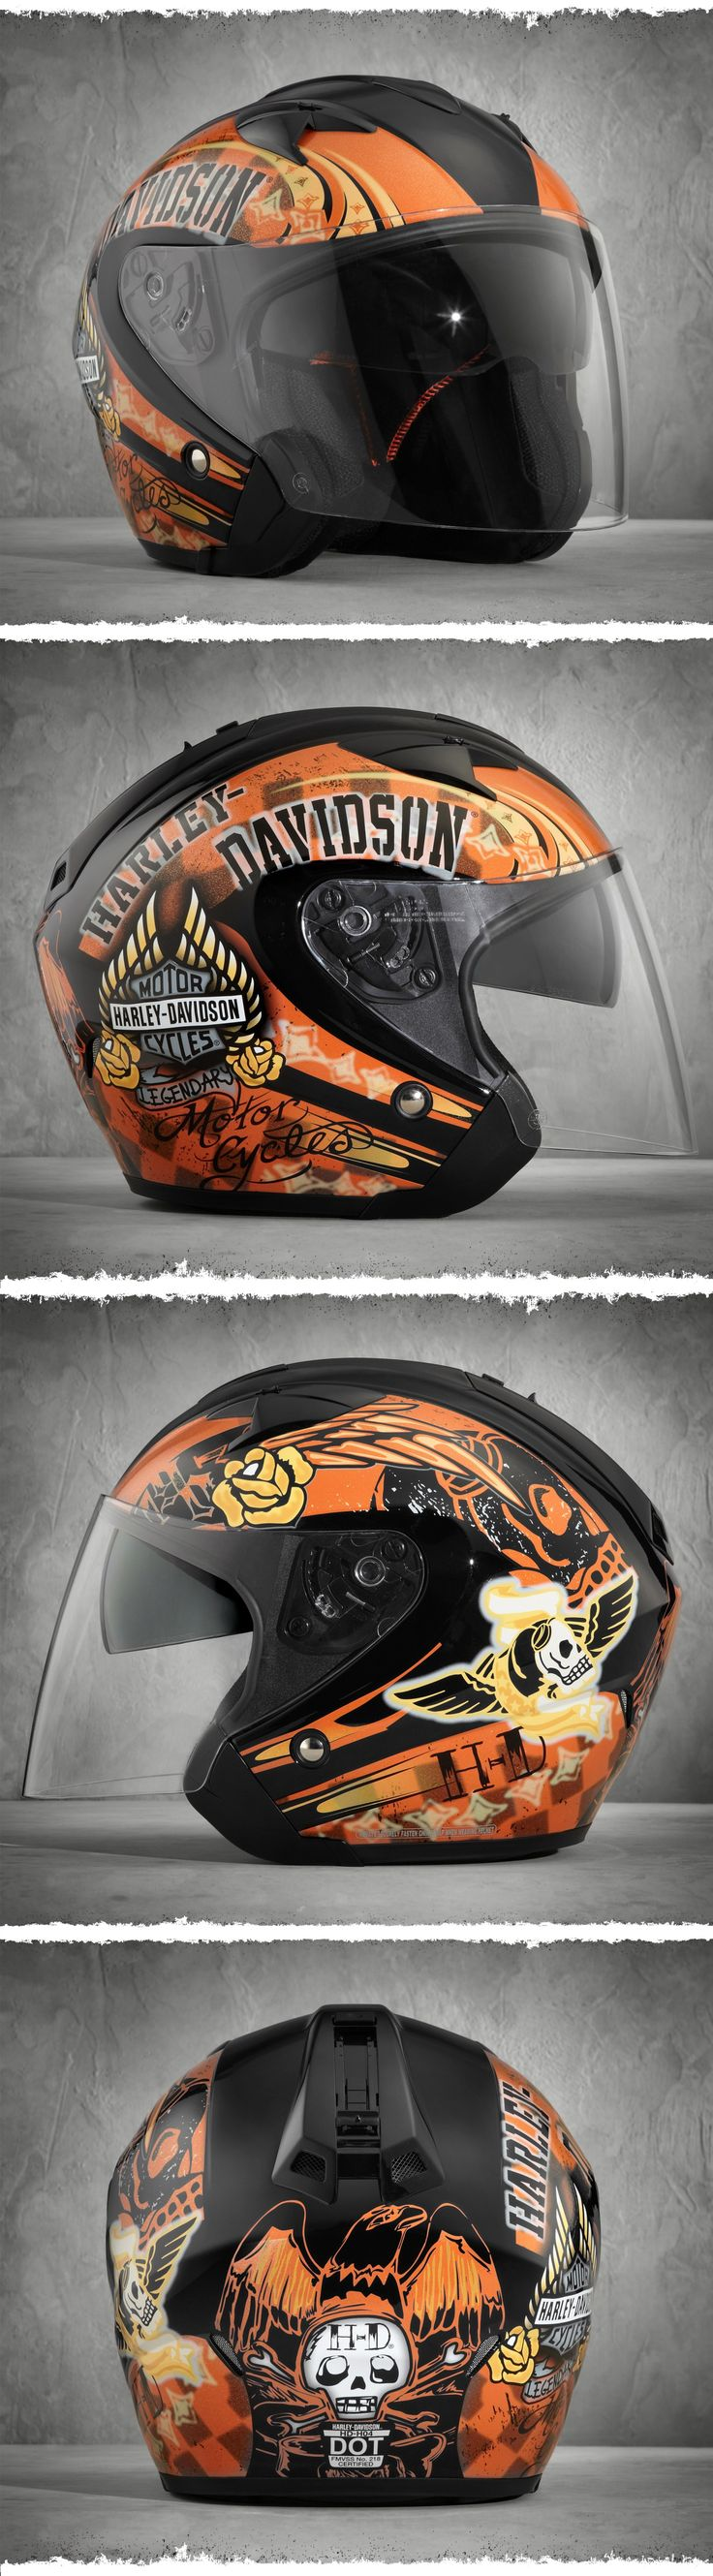 The feature you'll love the most on our women's 3/4 motorcycle helmet this summer is the Advanced Channeling Ventilation to help flush out hot, thick, humidity.   Harley-Davidson Women's Keystone 3/4 Helmet